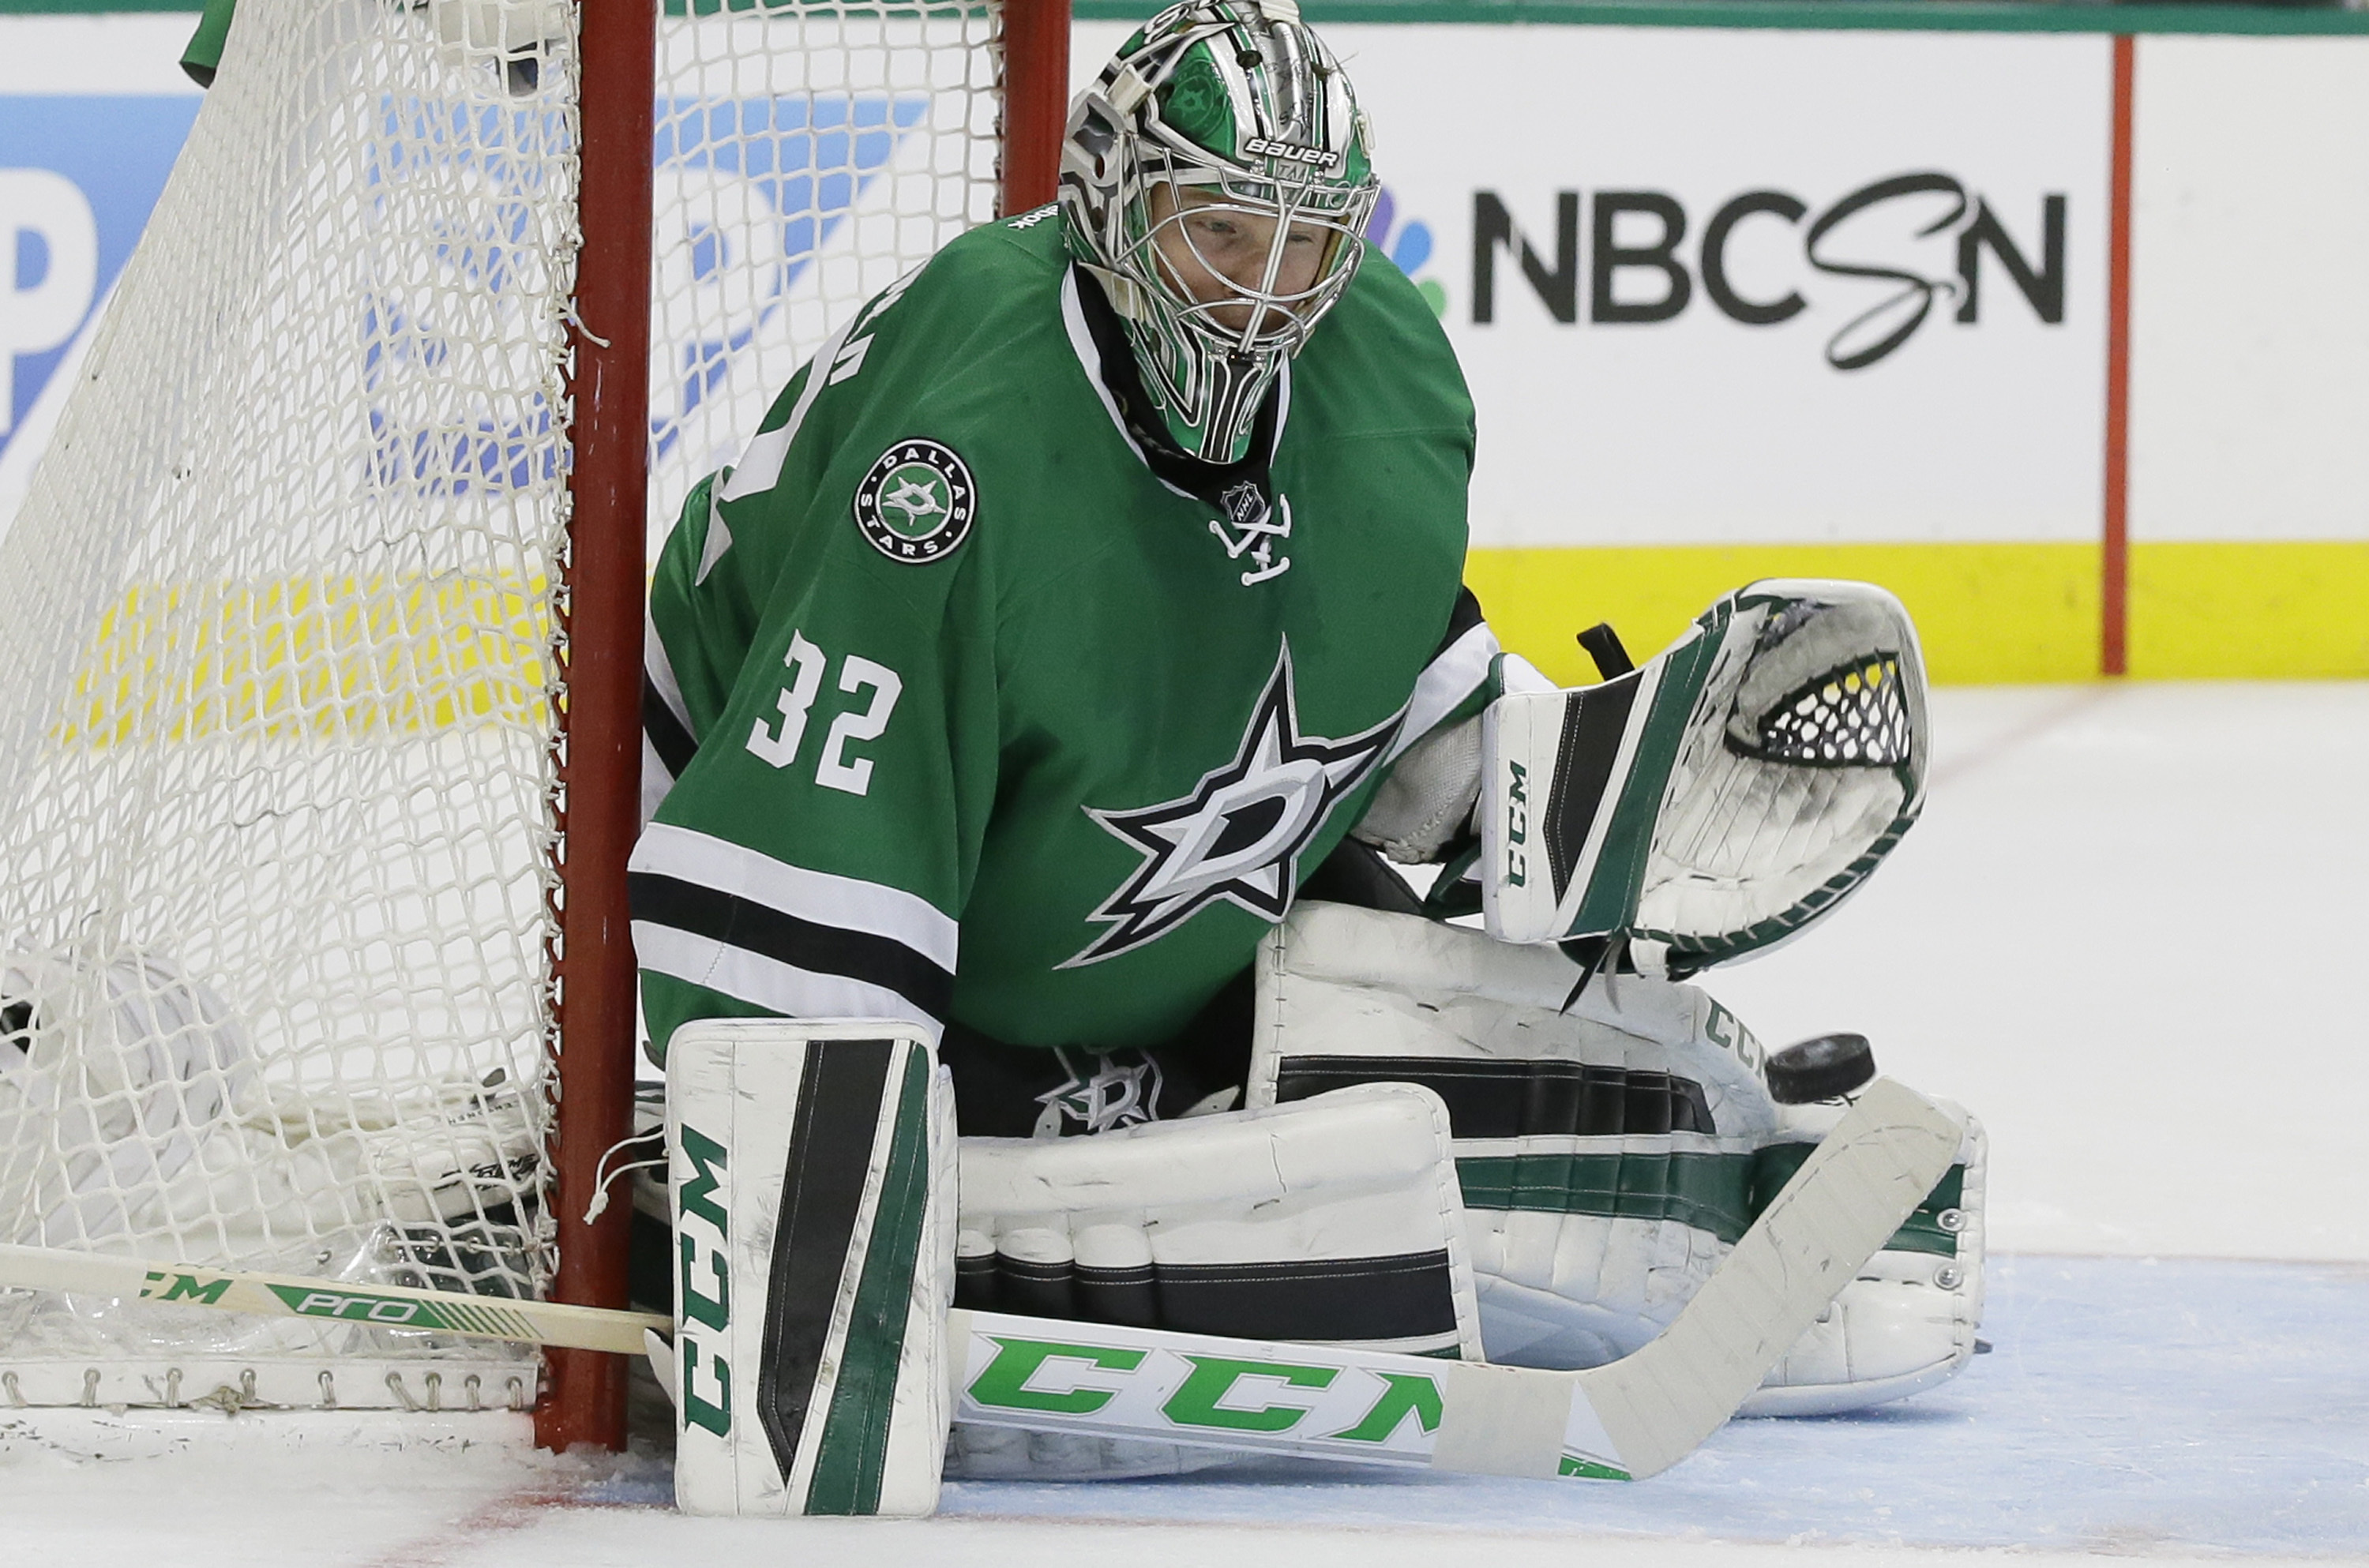 Dallas Stars goalie Kari Lehtonen (32) blocks a shot during the second period of Game 1 in a first-round NHL hockey Stanley Cup playoff series against the Minnesota Wild on Thursday, April 14, 2016, in Dallas. (AP Photo/LM Otero)